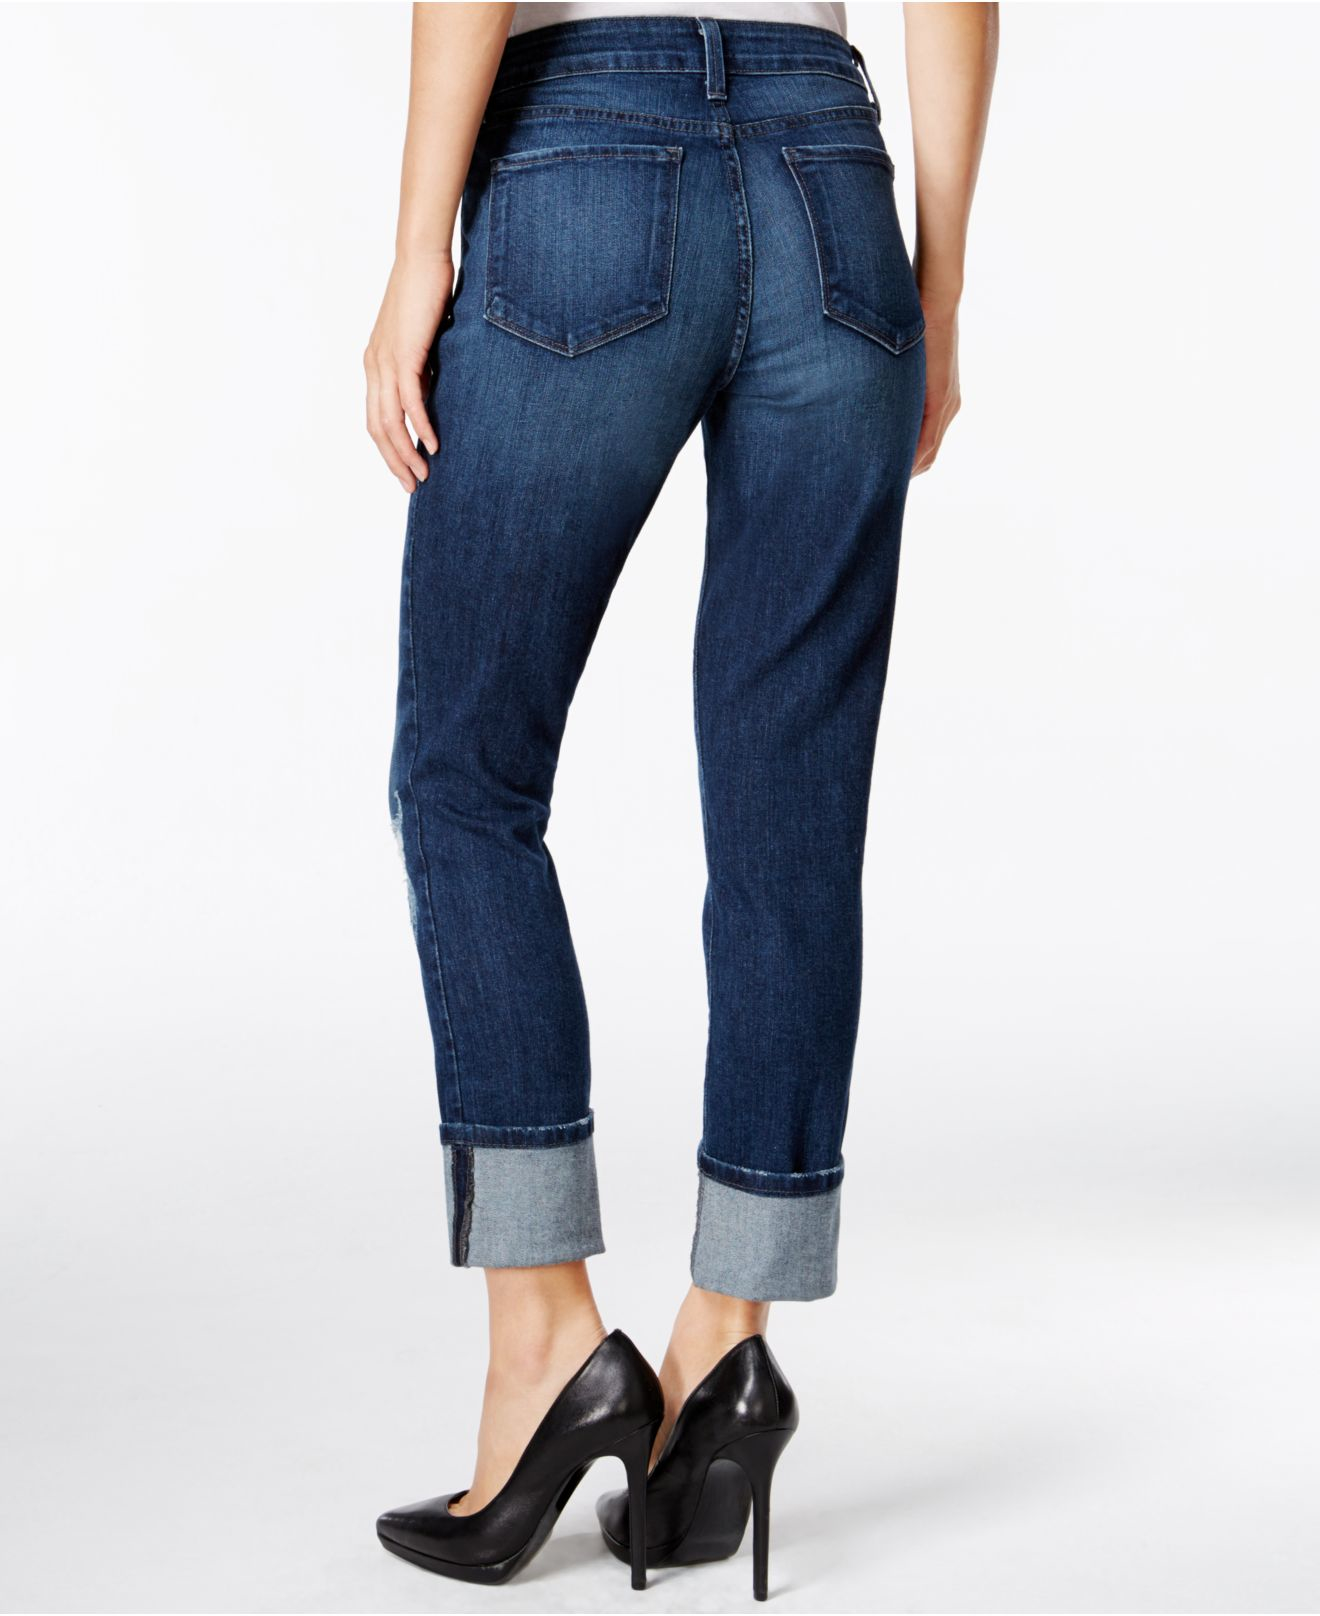 Find great deals on eBay for ankle jeans petite. Shop with confidence.